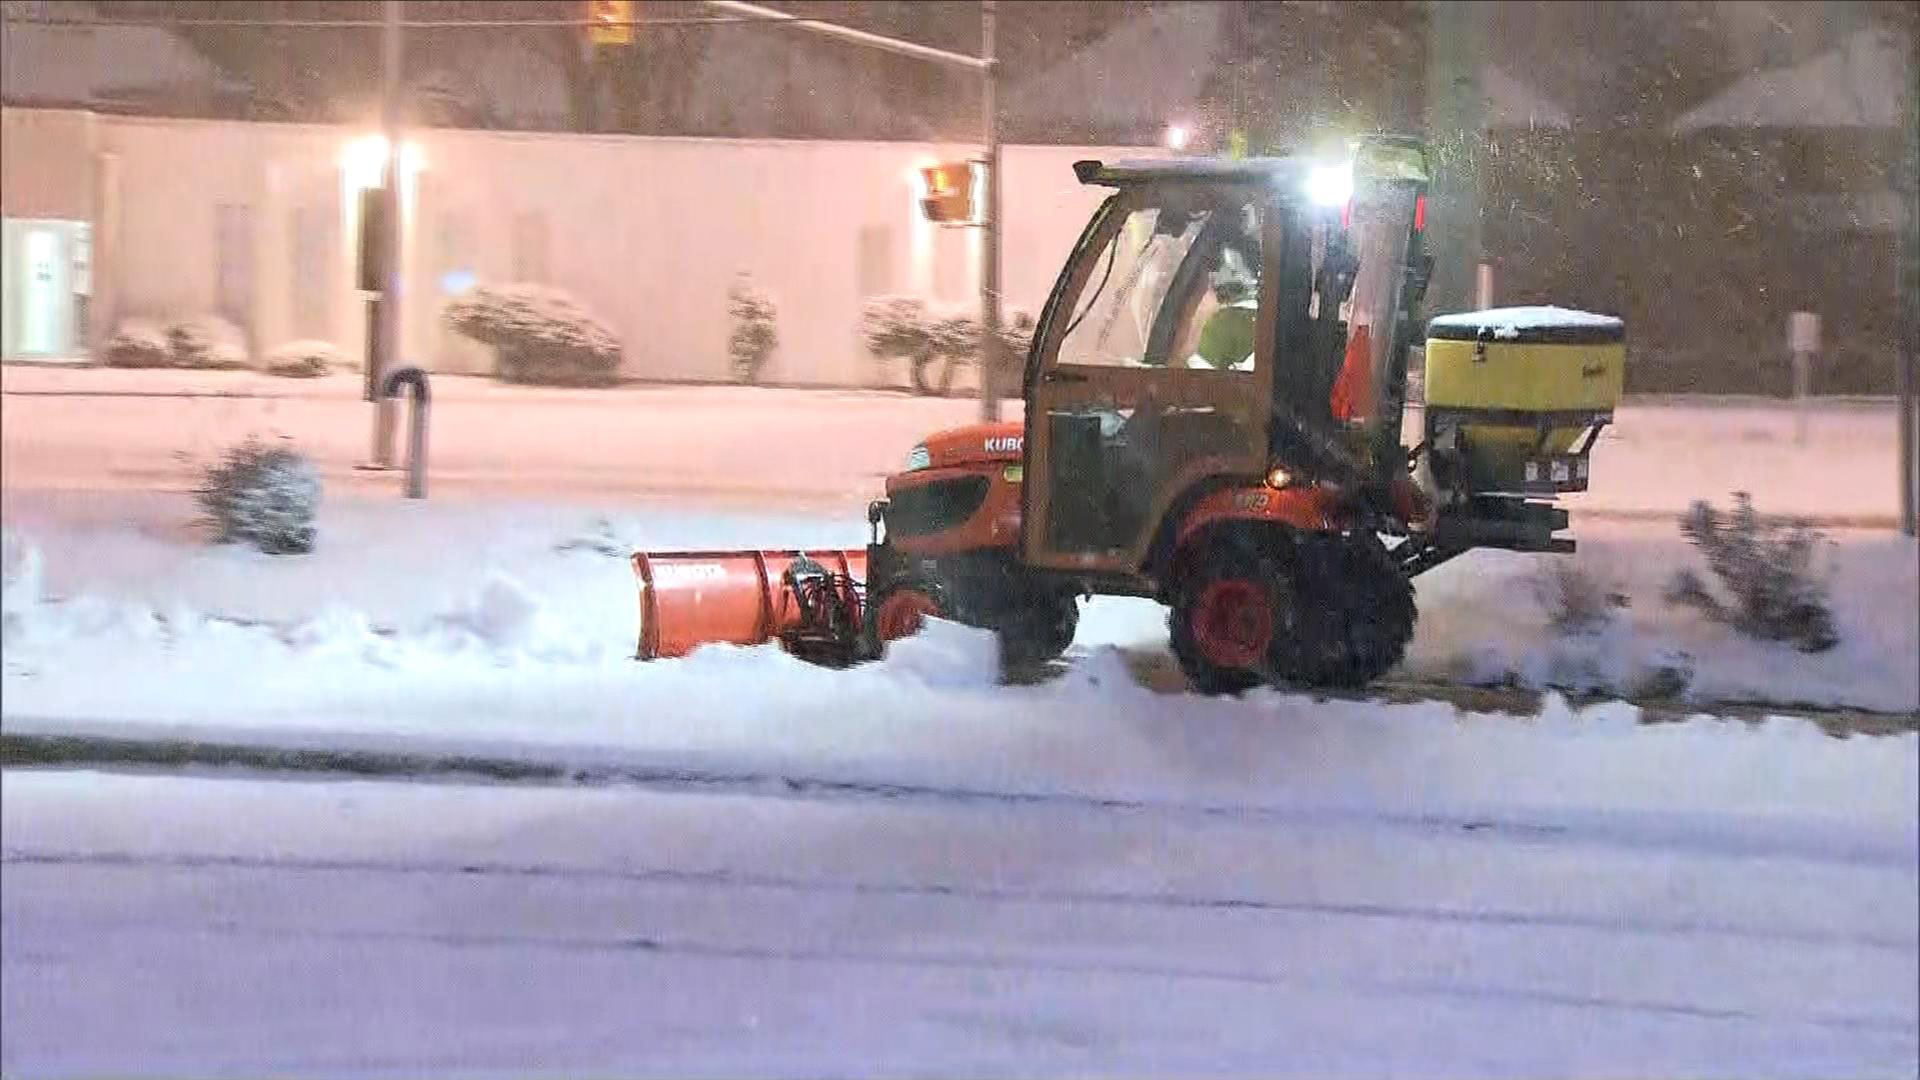 A snowplow clearing away snow in the Richmond Hill area on Dec. 5, 2016. CITYNEWS/Bertram Dandy